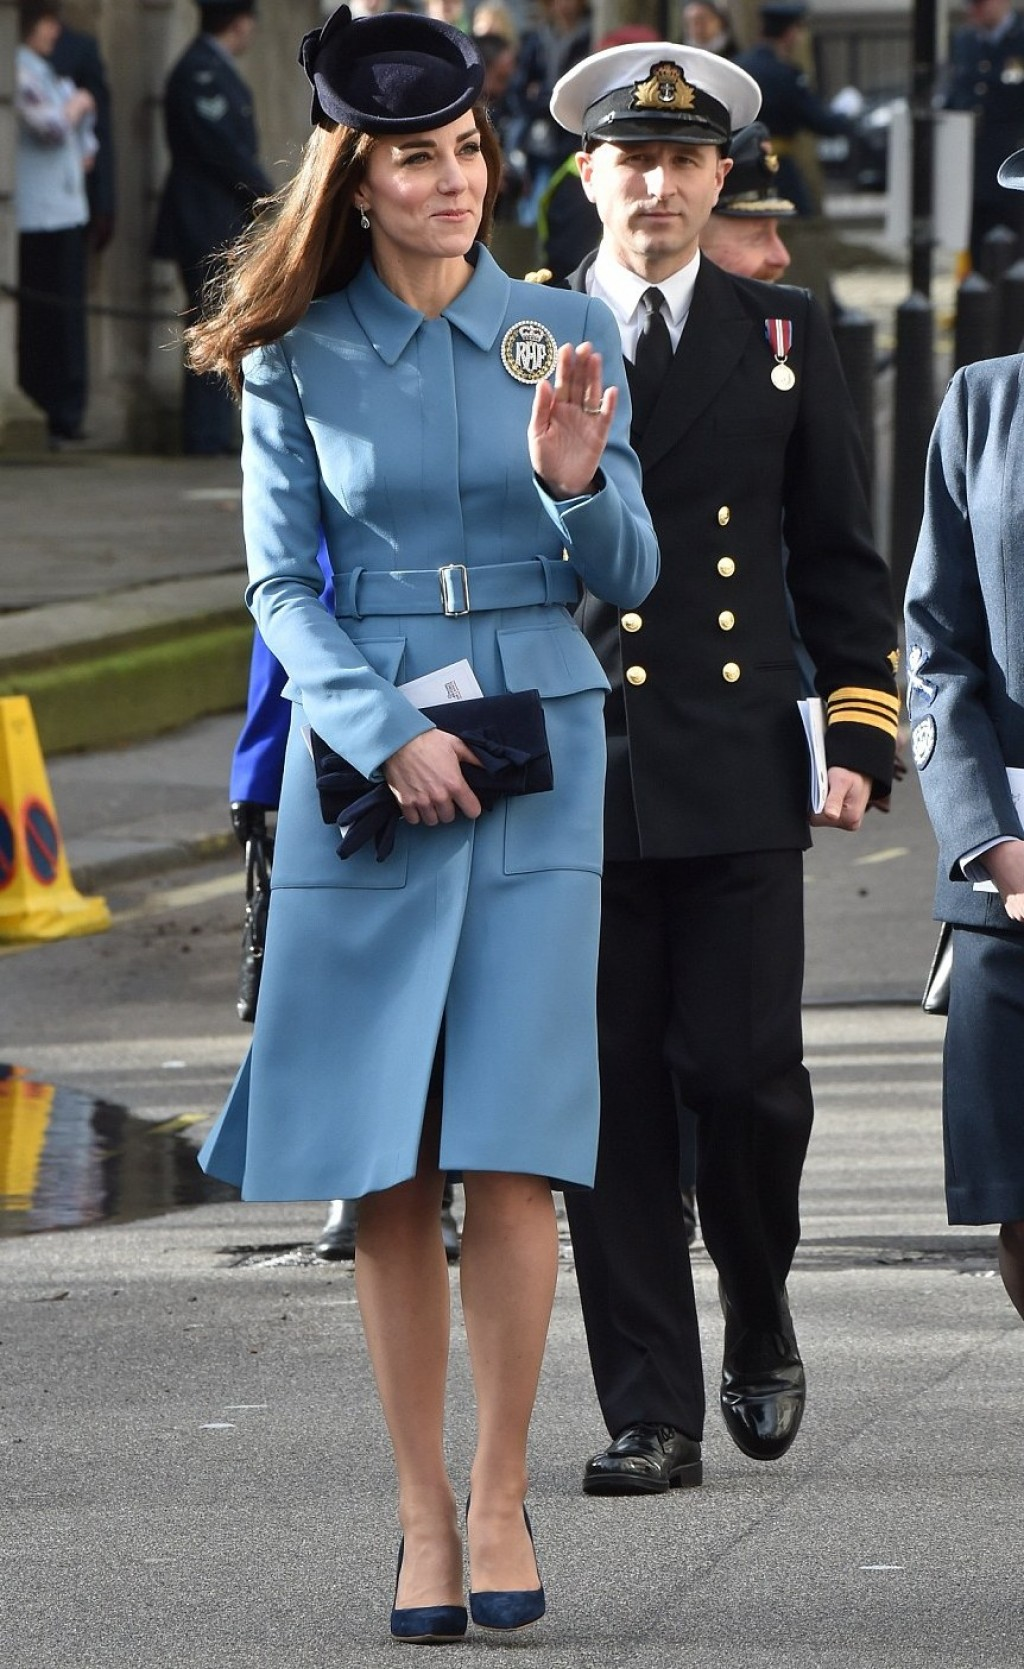 Air-Cadets-75th-anniversary-Kate-Middleton-Alexander-McQueen-1024x1669